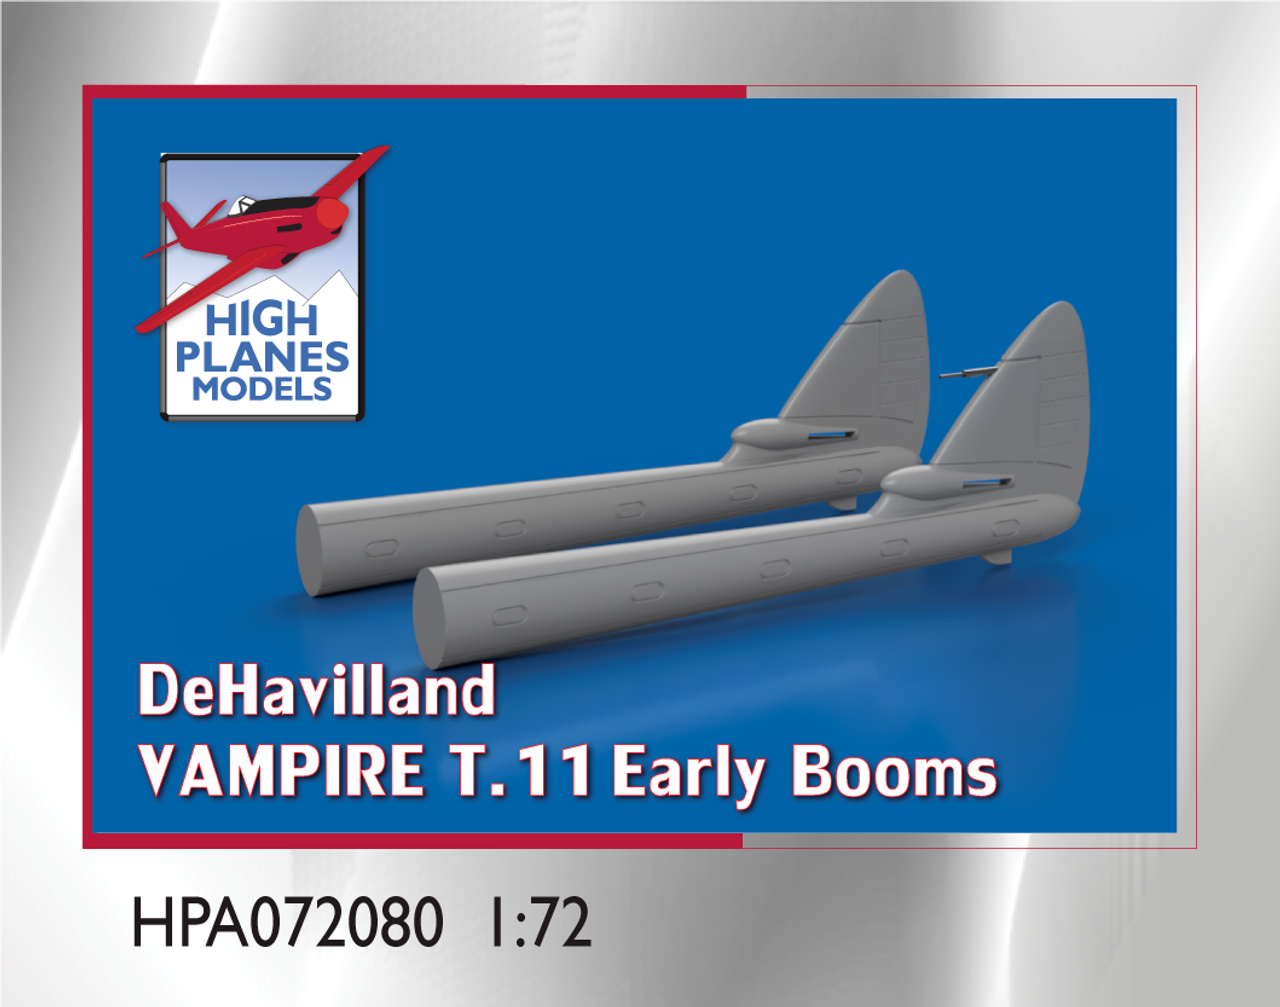 High Planes DeHavilland Vampire T.11 Early Booms 1:72 Accessories (HPA072080)